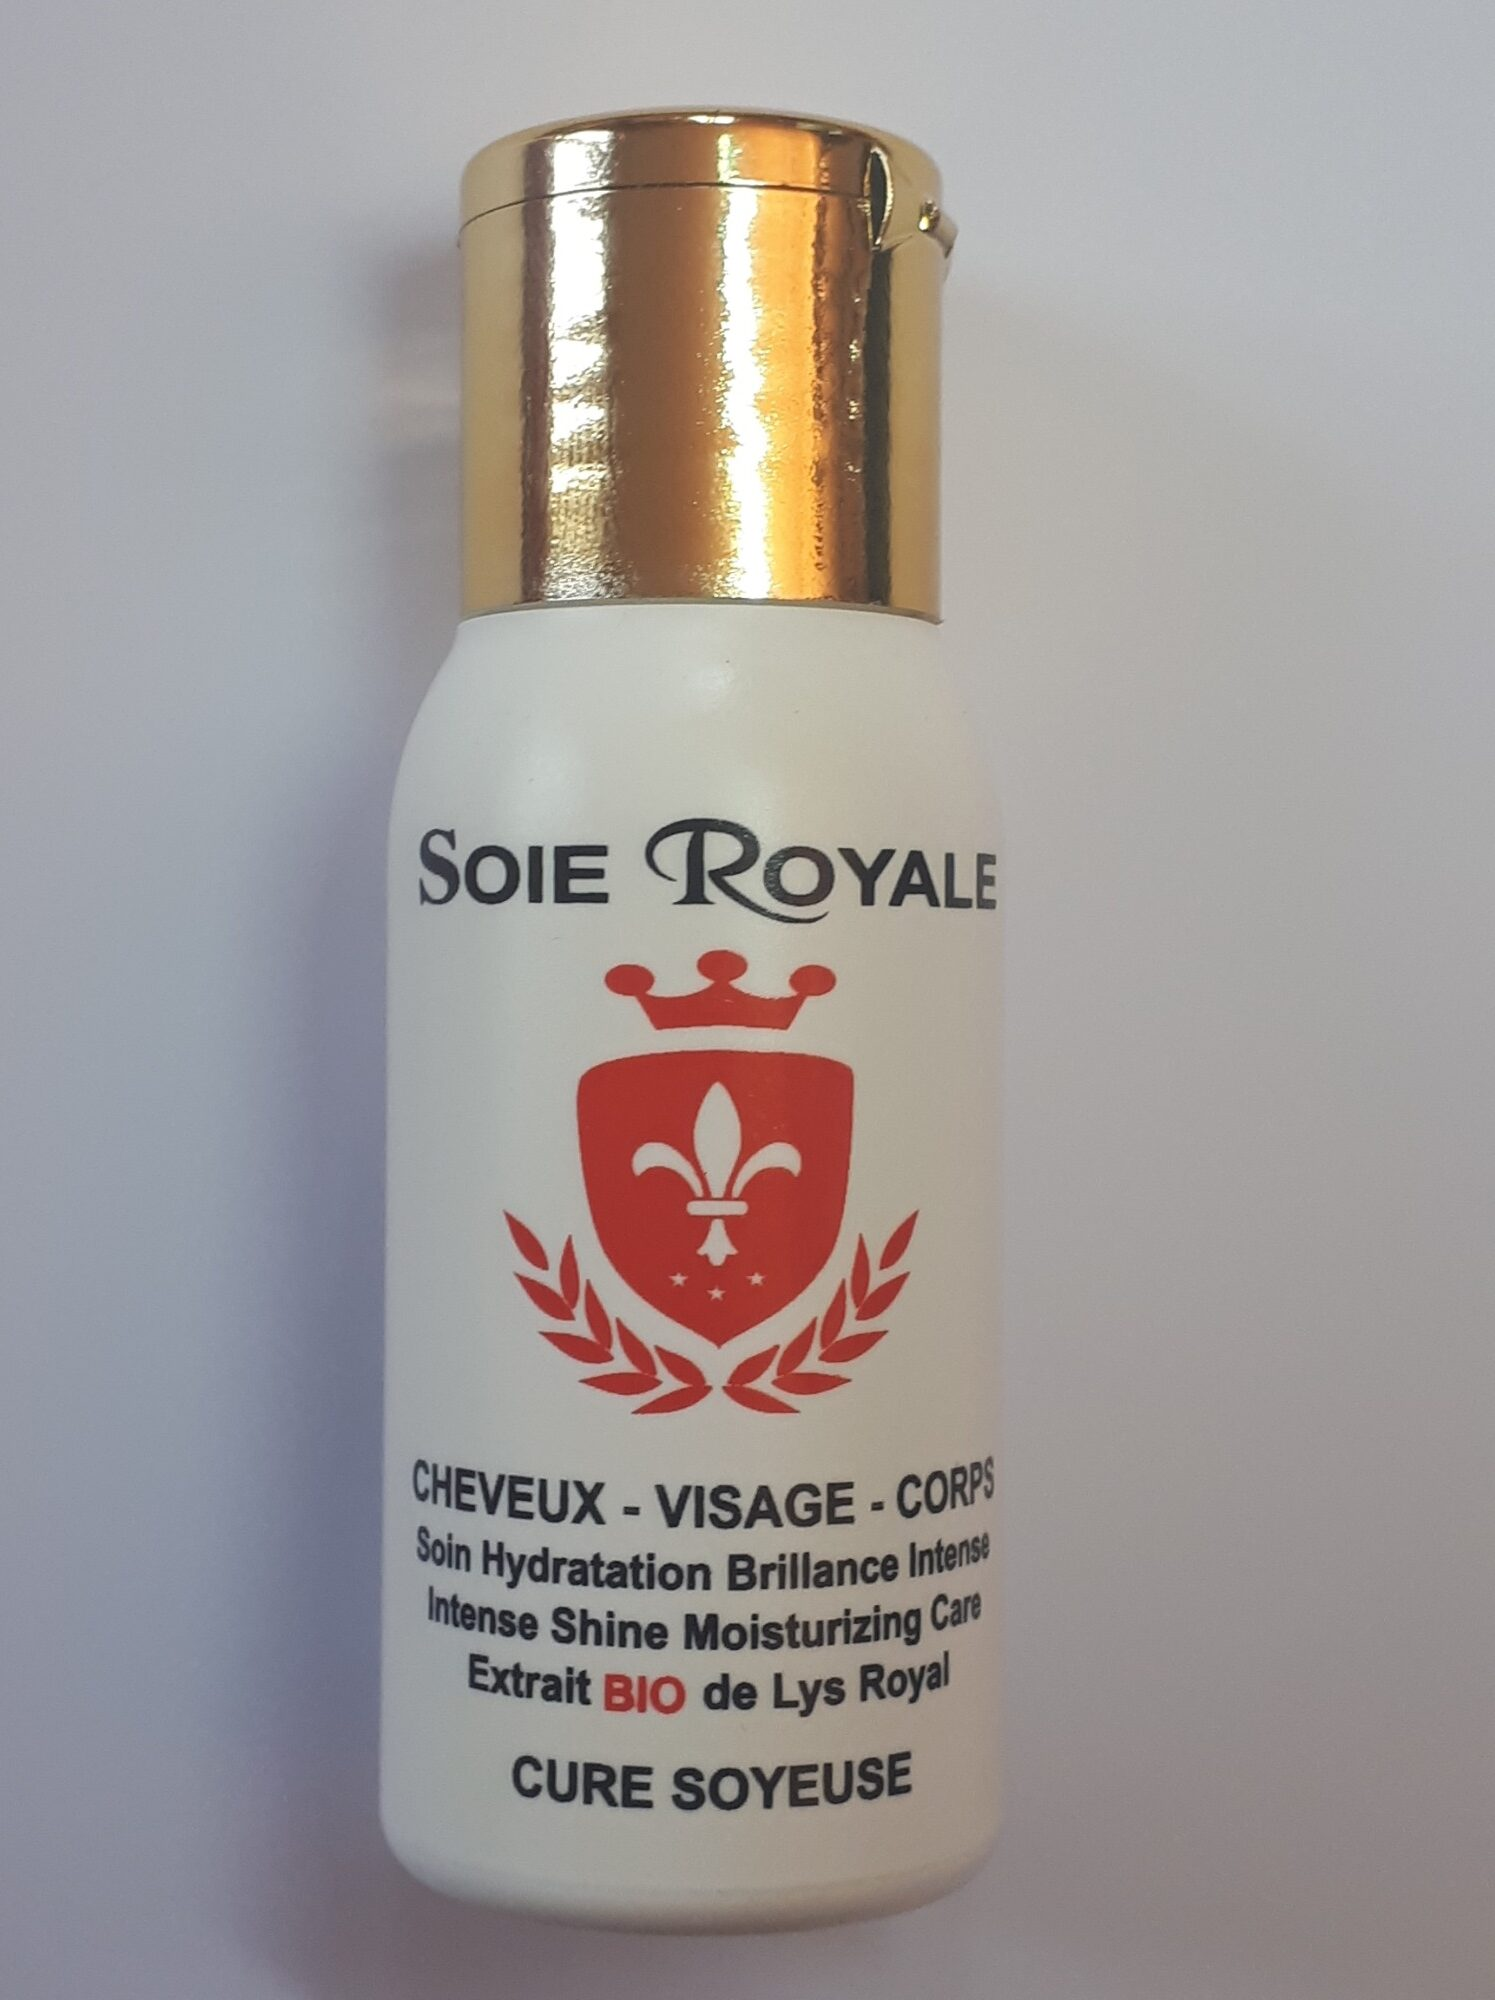 Soie royale BIO Cure Soyeuse - Ingredients